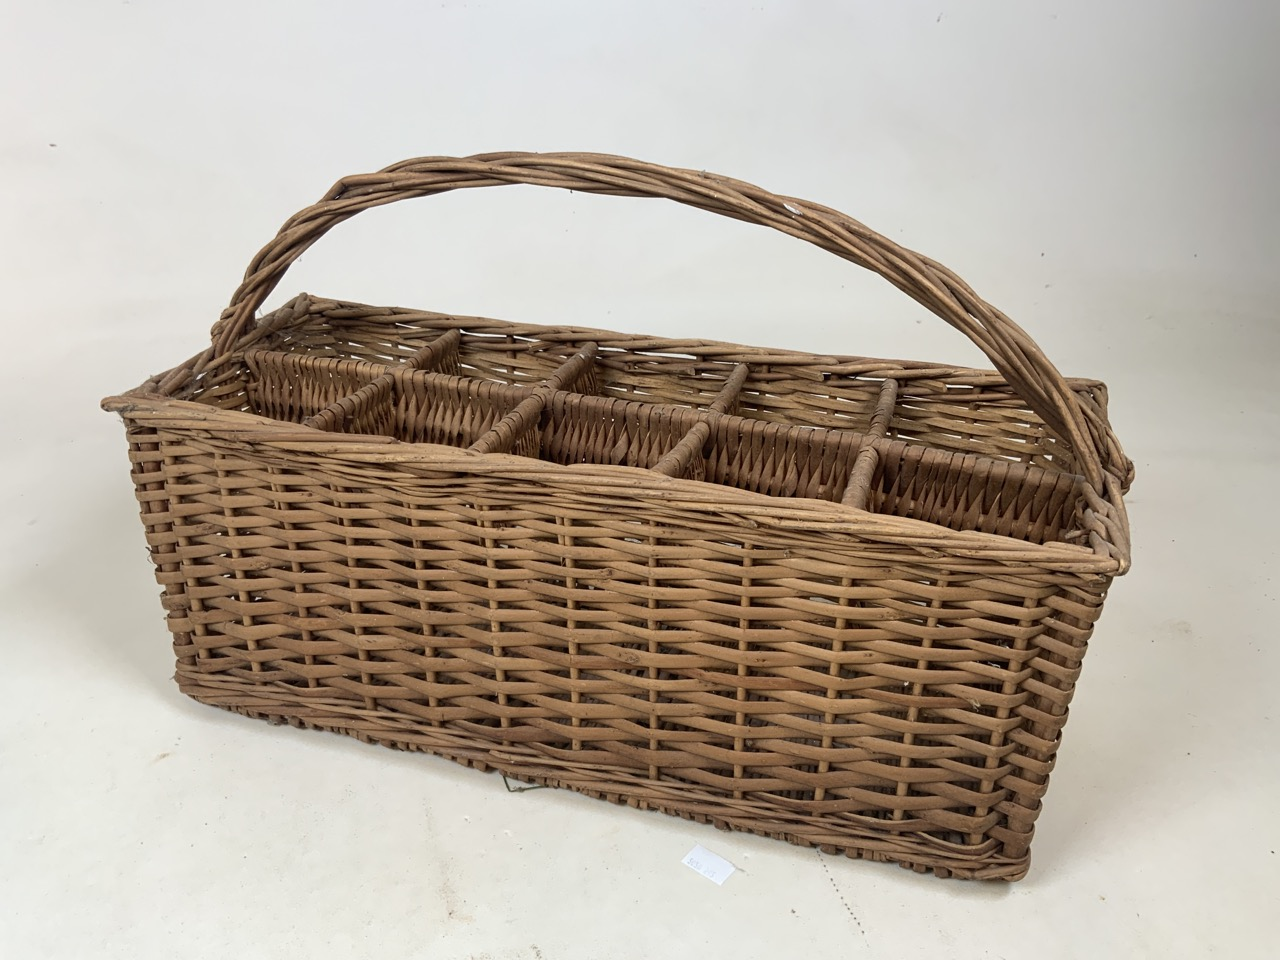 A vintage wicker ten bottle carrier together with Royal Doulton Parquet design tea cups and - Image 2 of 3